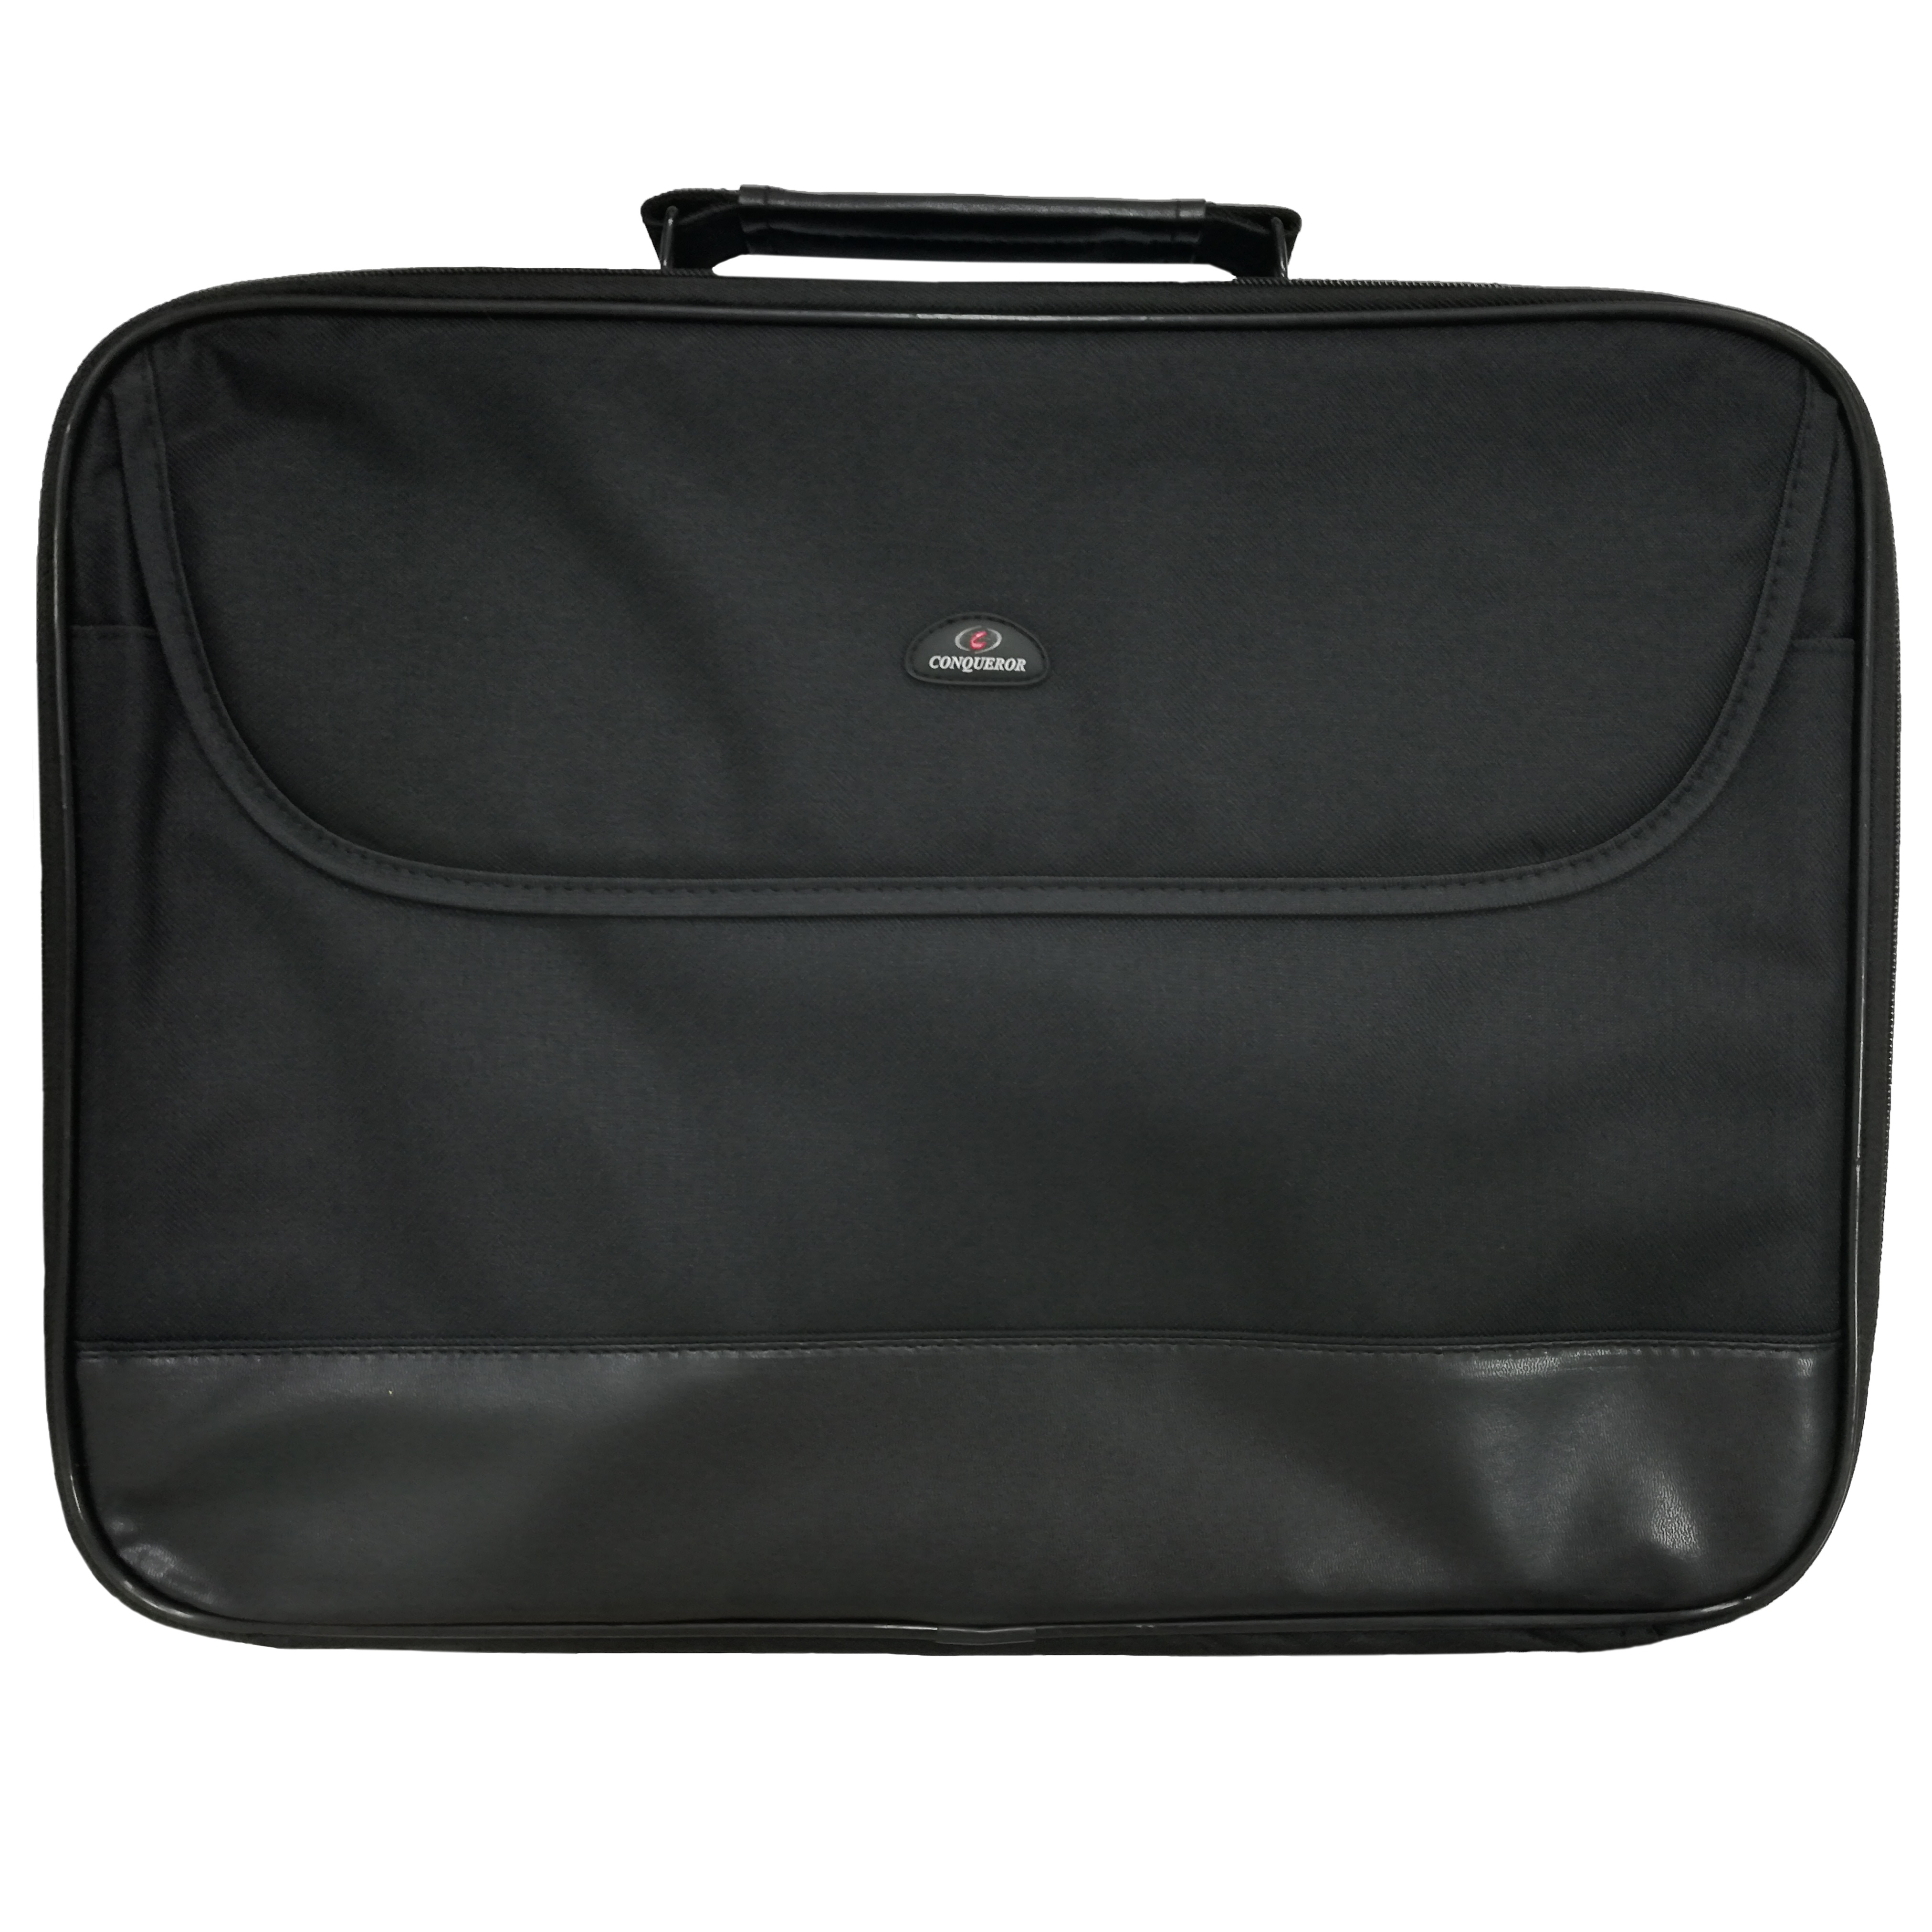 Conqueror Protective Laptop Bag Carrying Case with Shoulder Strap Fits Up to 16 Inch Display Black - C270